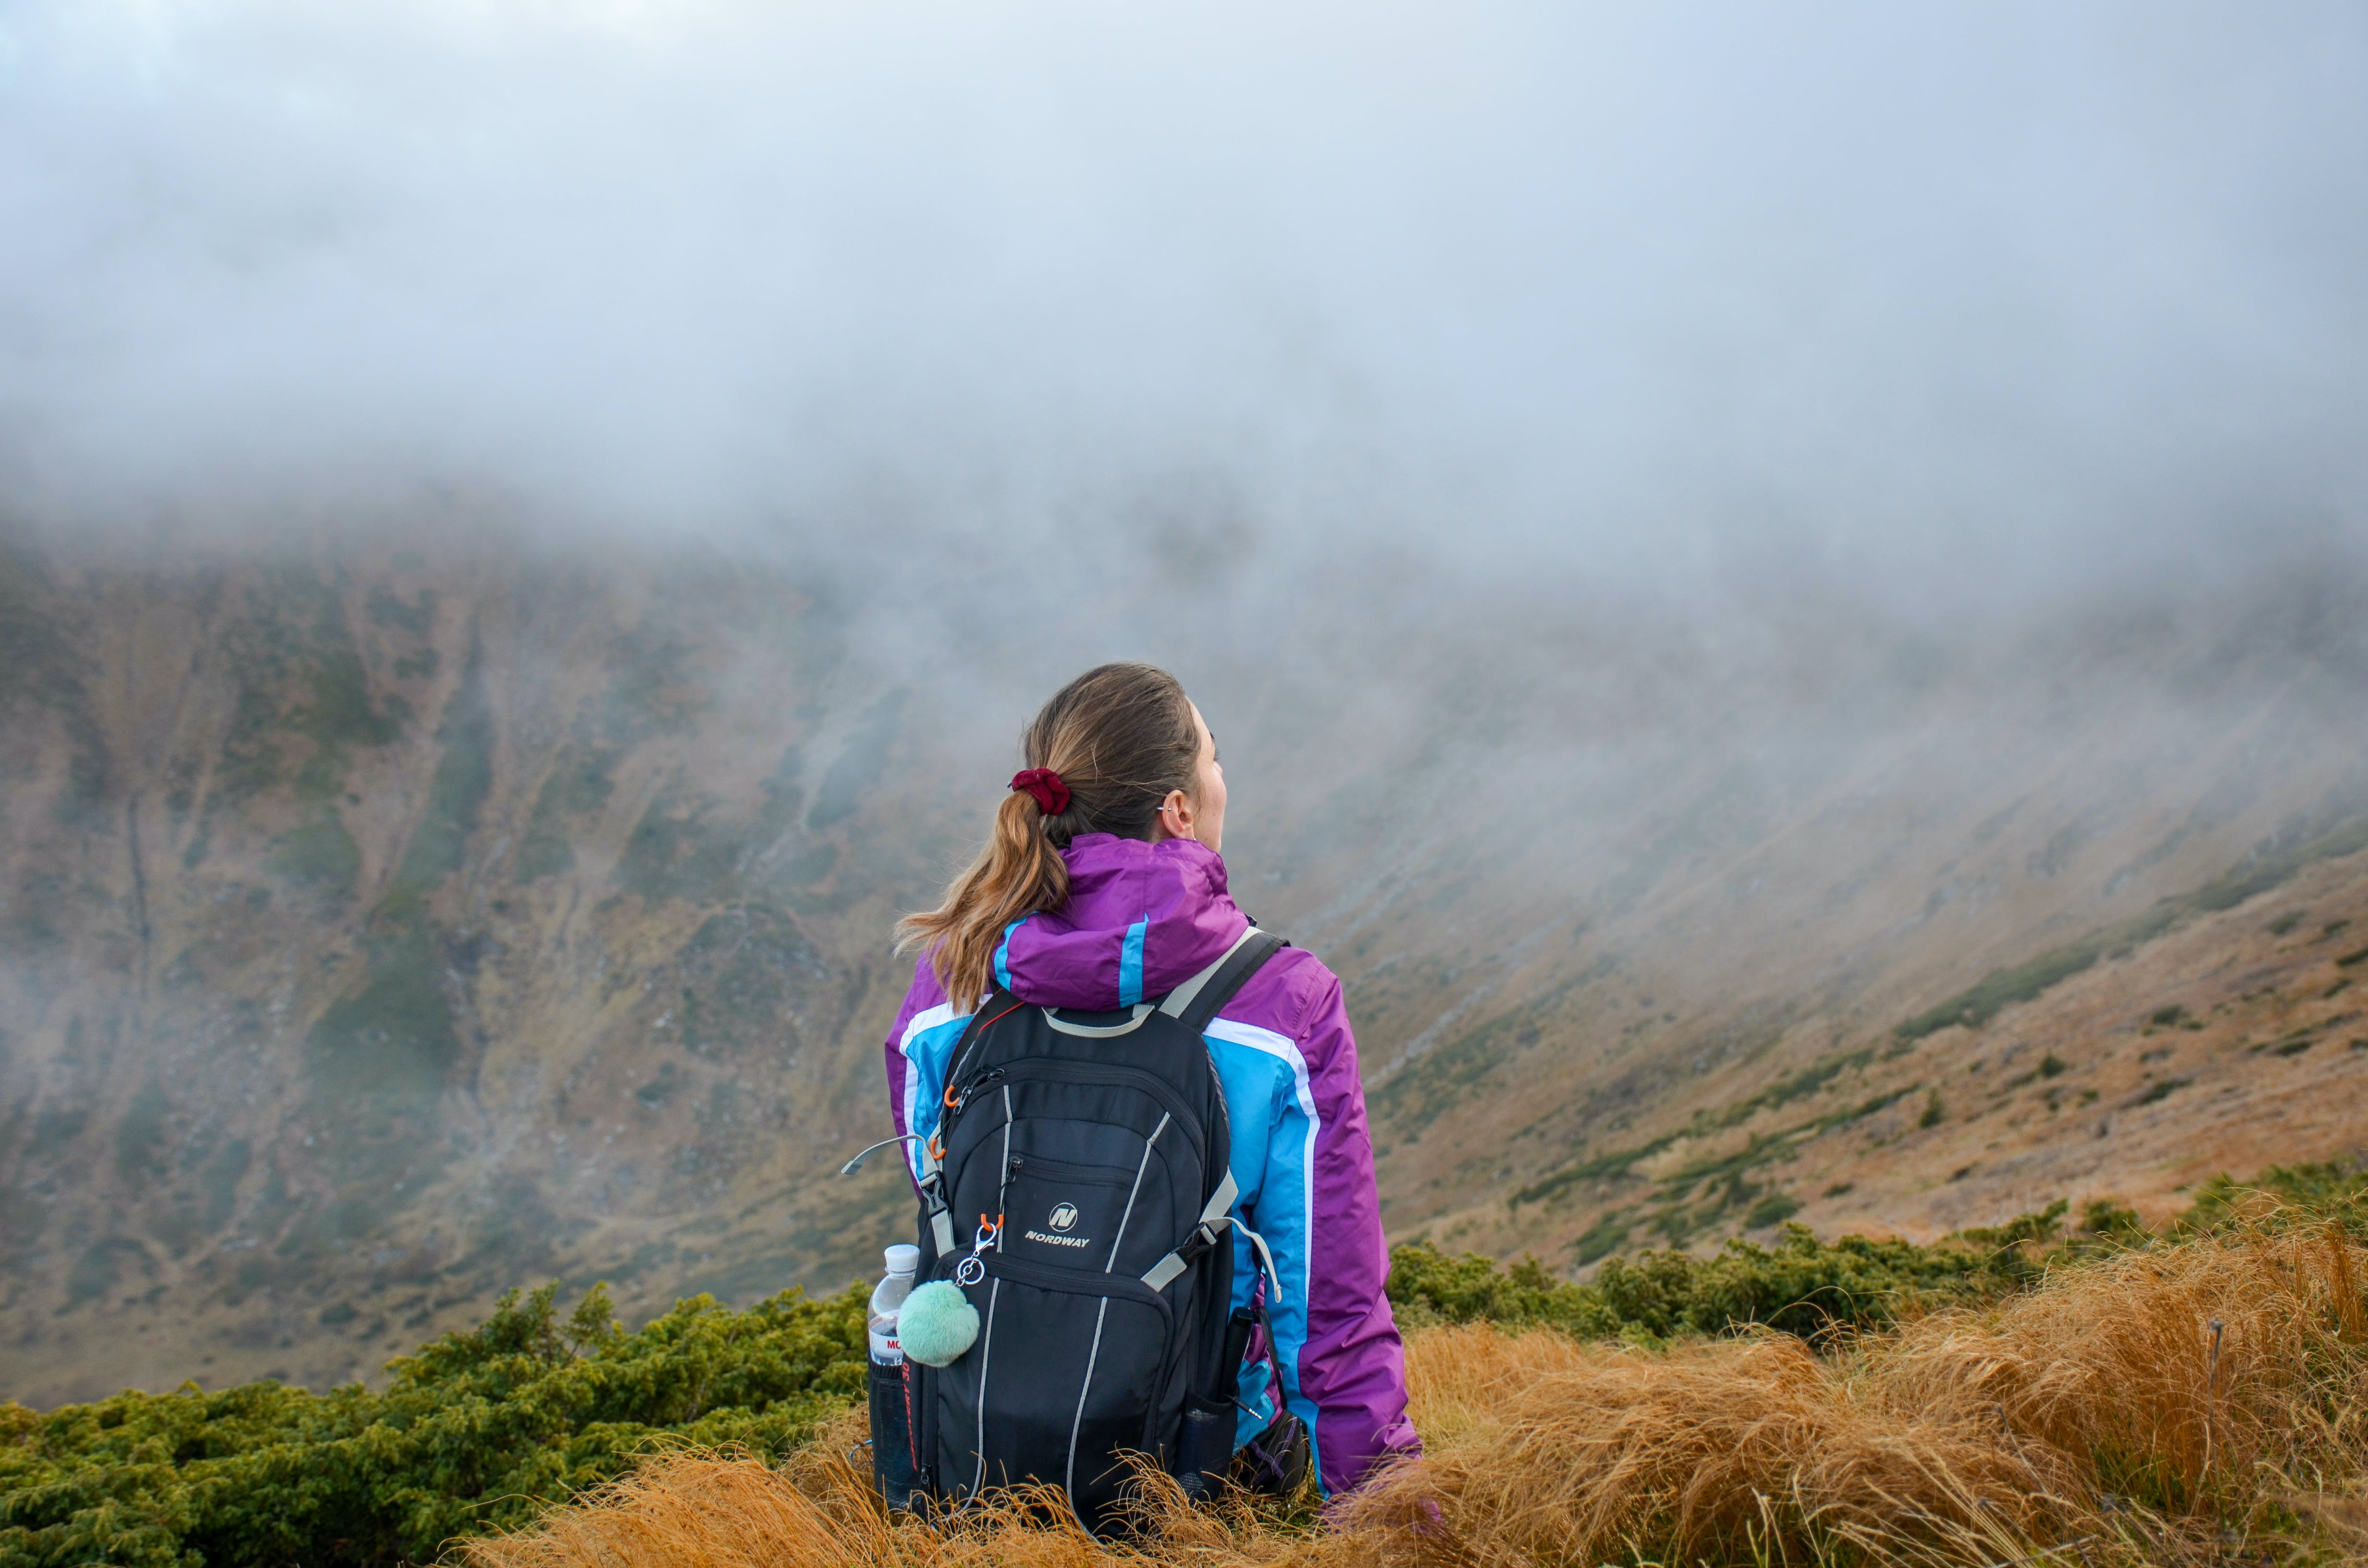 Woman Standing on Mountain Wearing Black Backpack